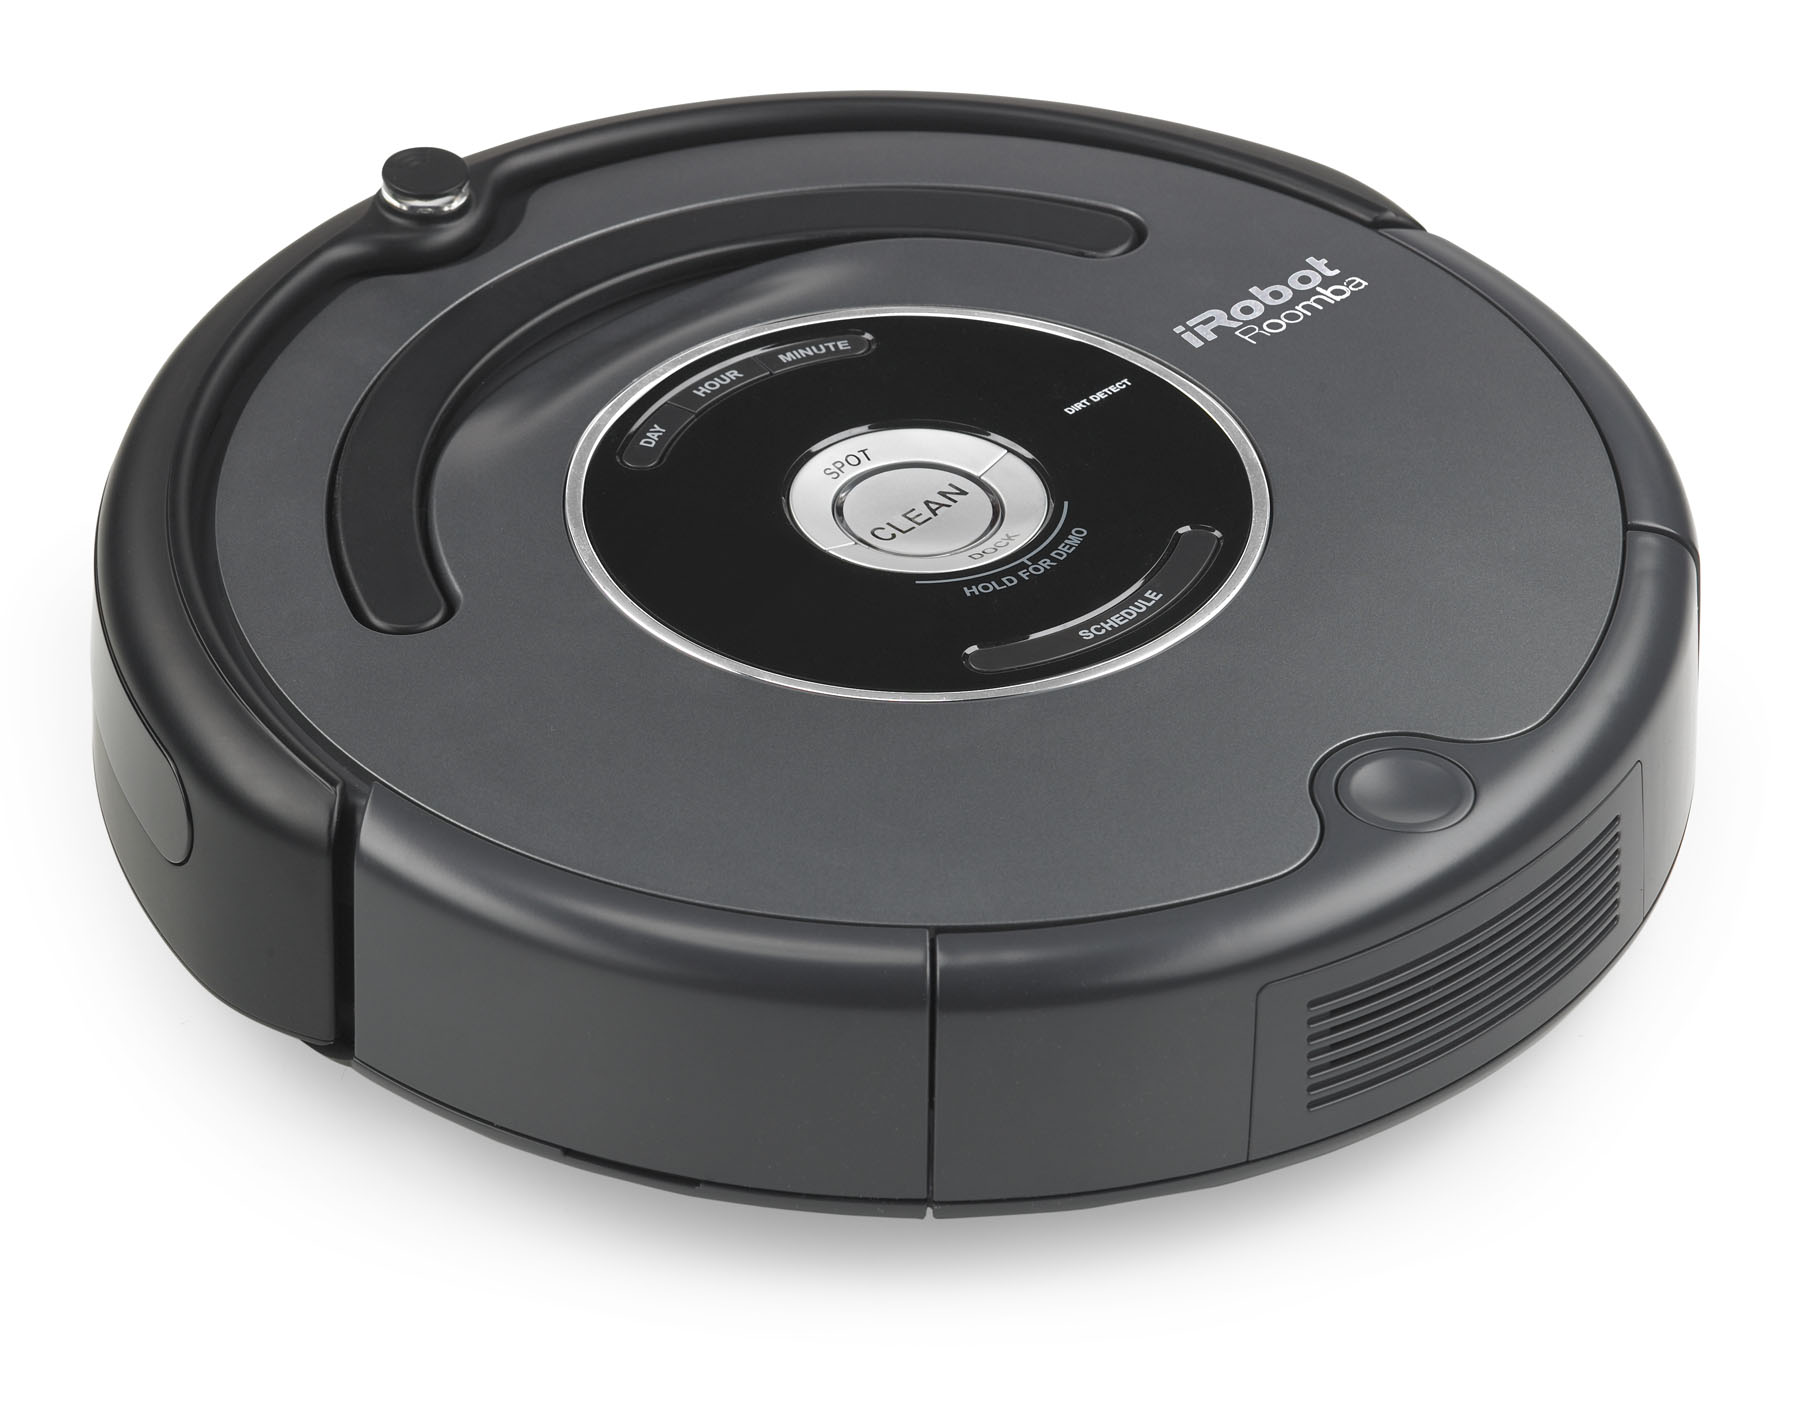 irobot roomba review. Black Bedroom Furniture Sets. Home Design Ideas